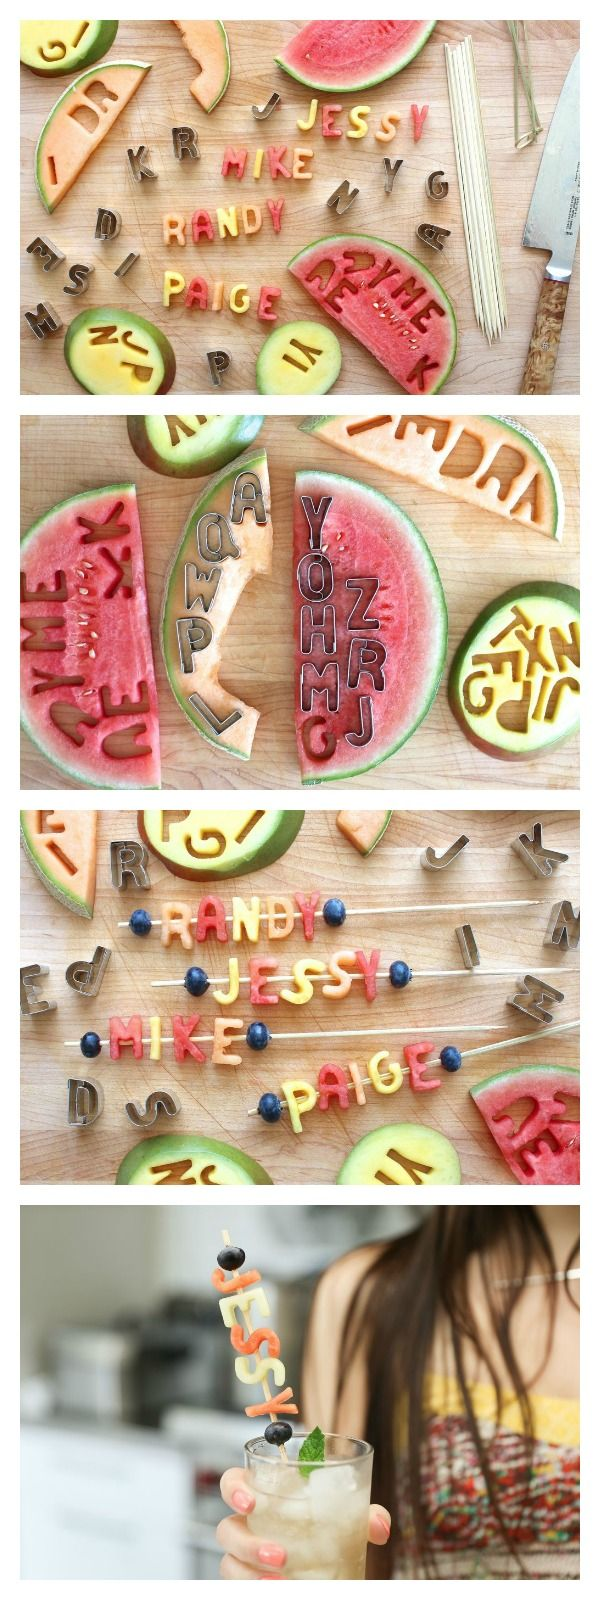 If you really want to get creative with your cookie cutter creations, use letters to spell your guests' names out of melon. They'll never mix up their drinks again! Click through for more summer watermelon tricks.